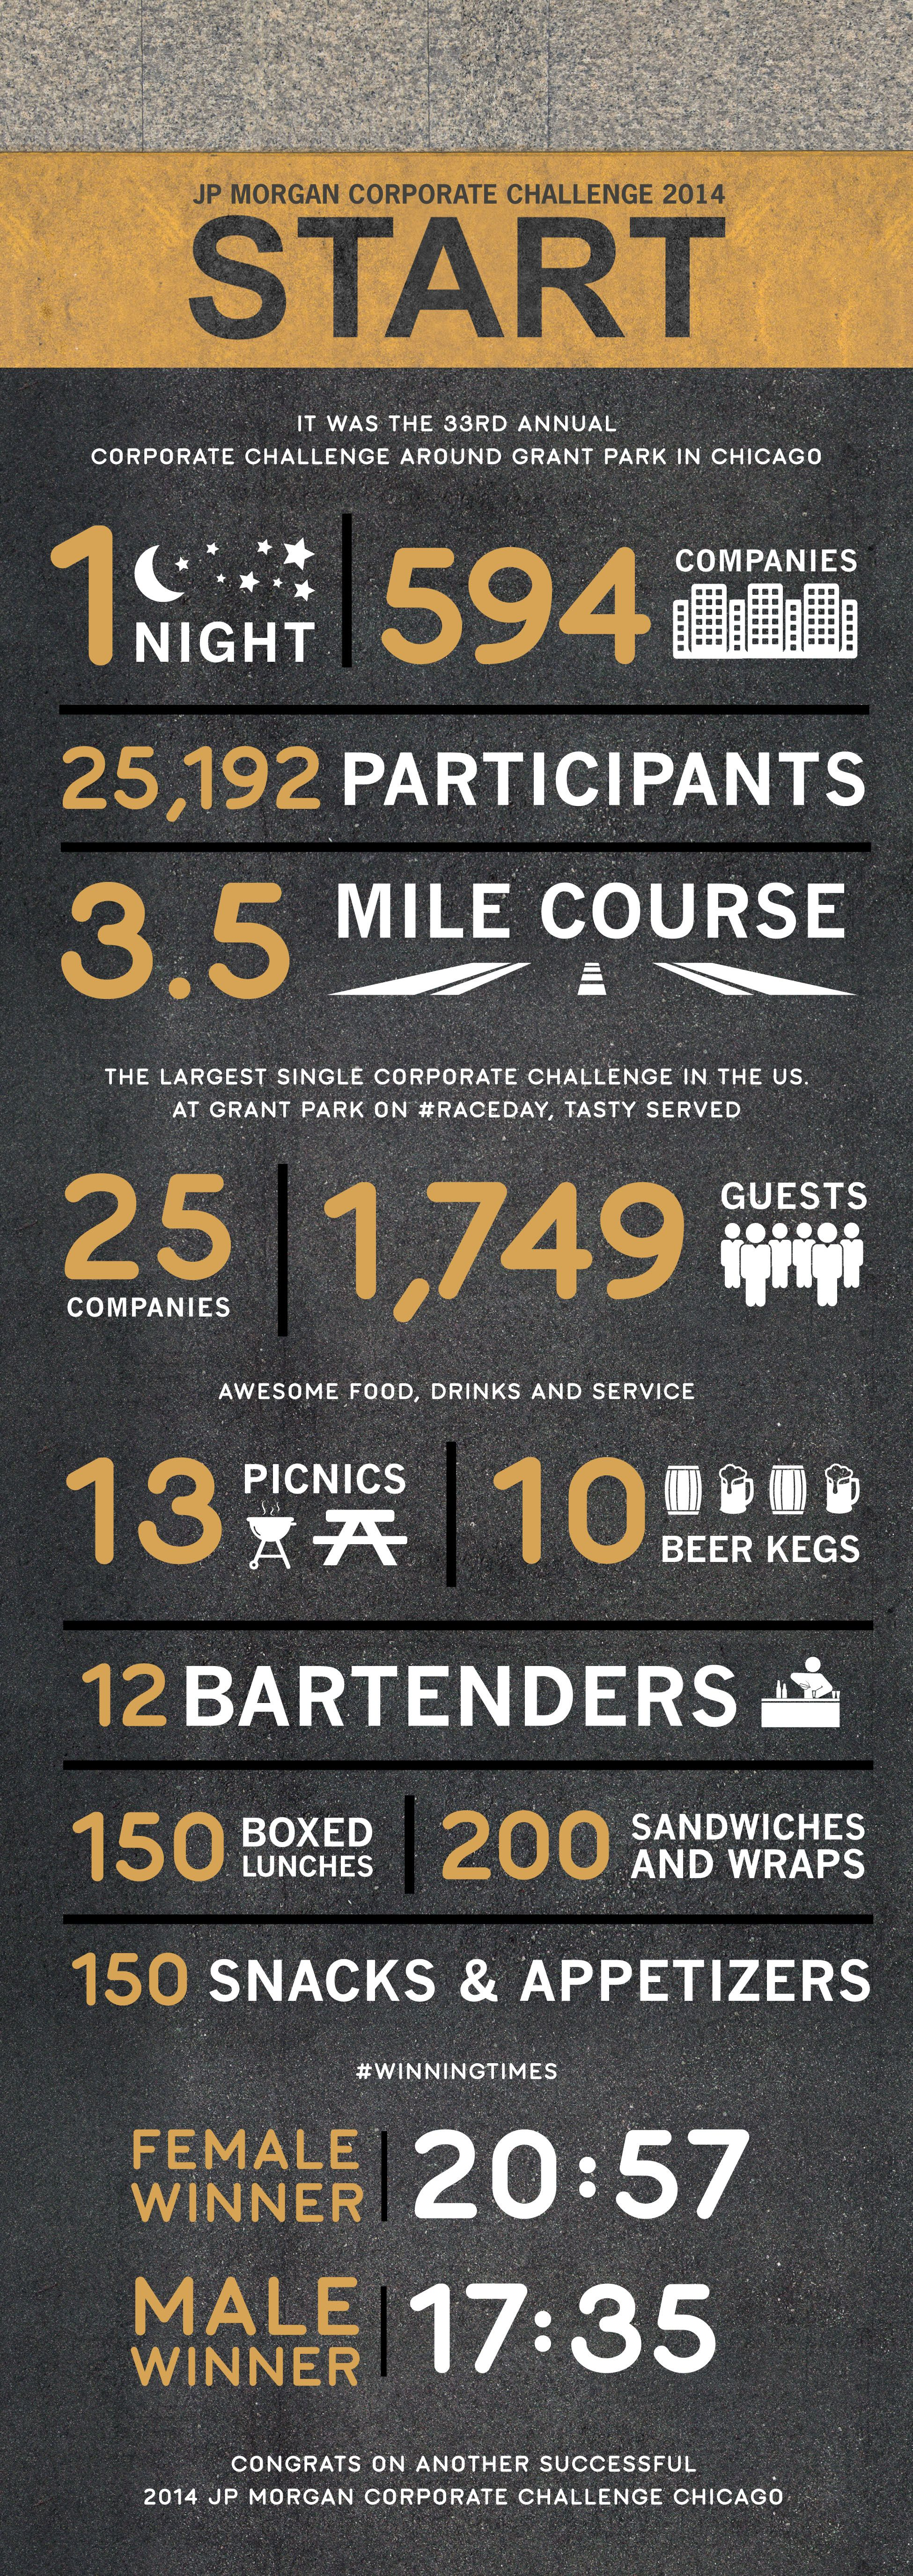 Infographic on this year's JP Morgan Corporate Challenge in Grant